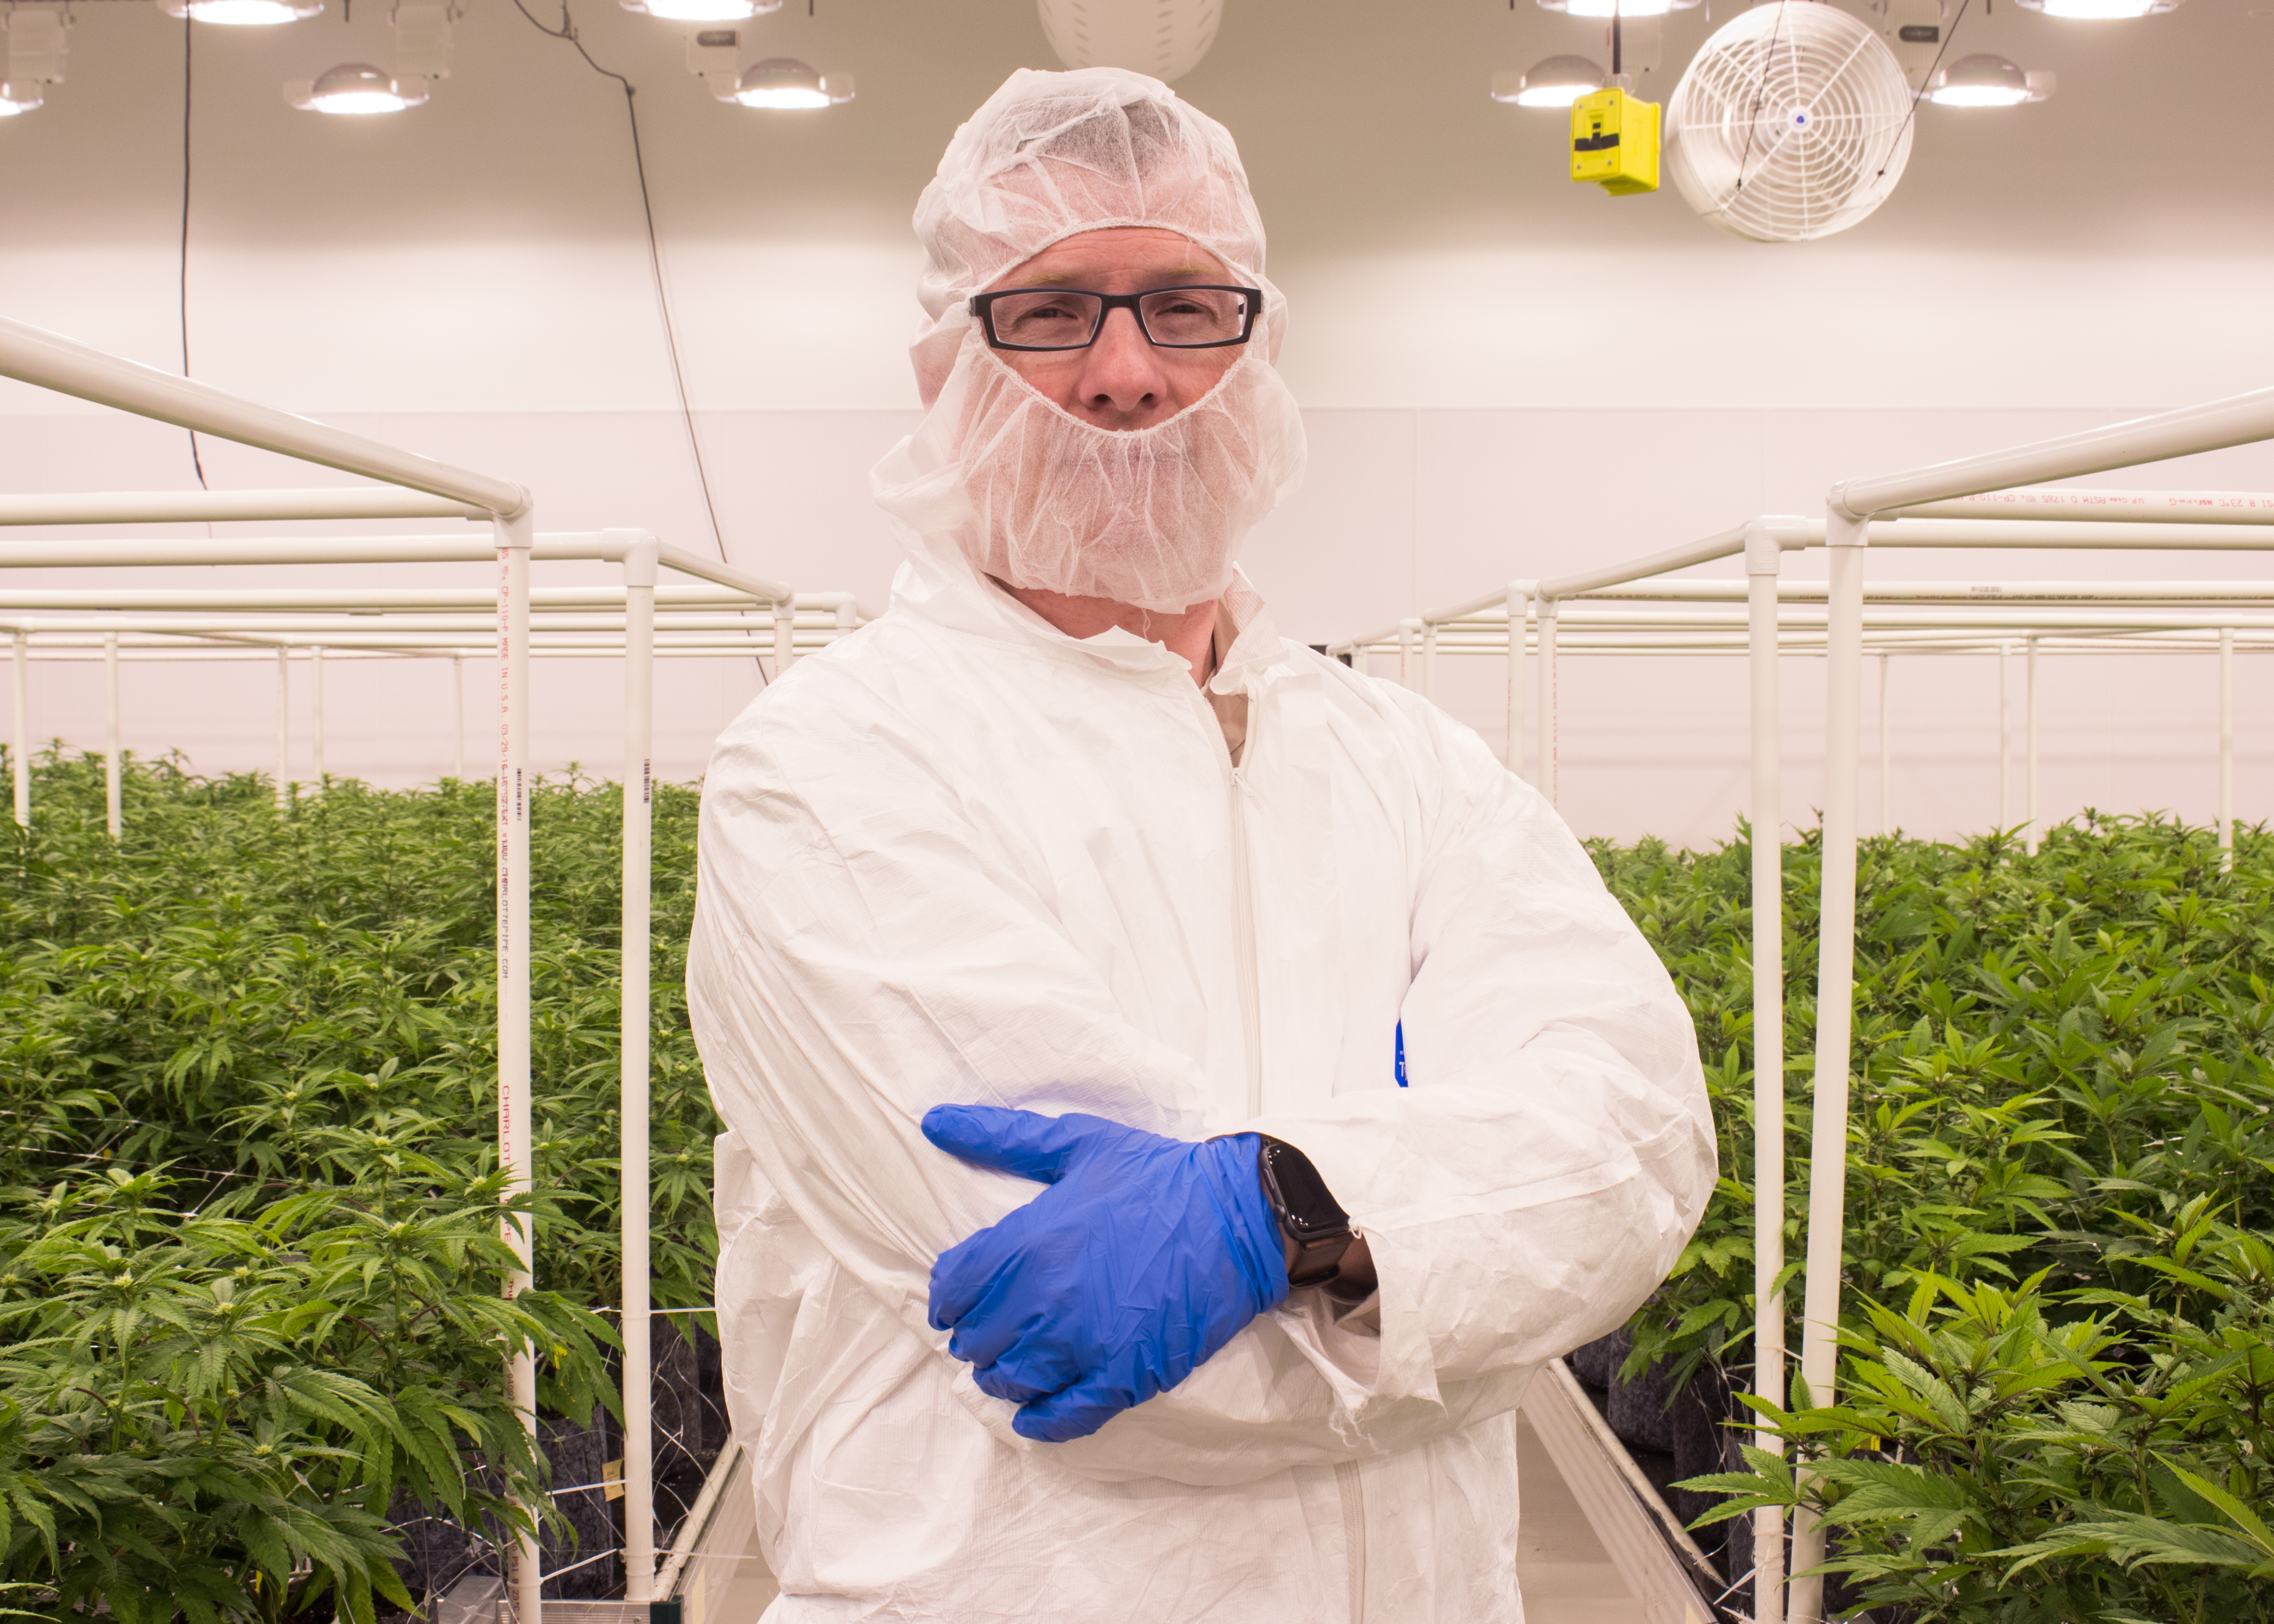 Marijuana regulators consider limiting home delivery licenses to small businesses and 'equity' applicants